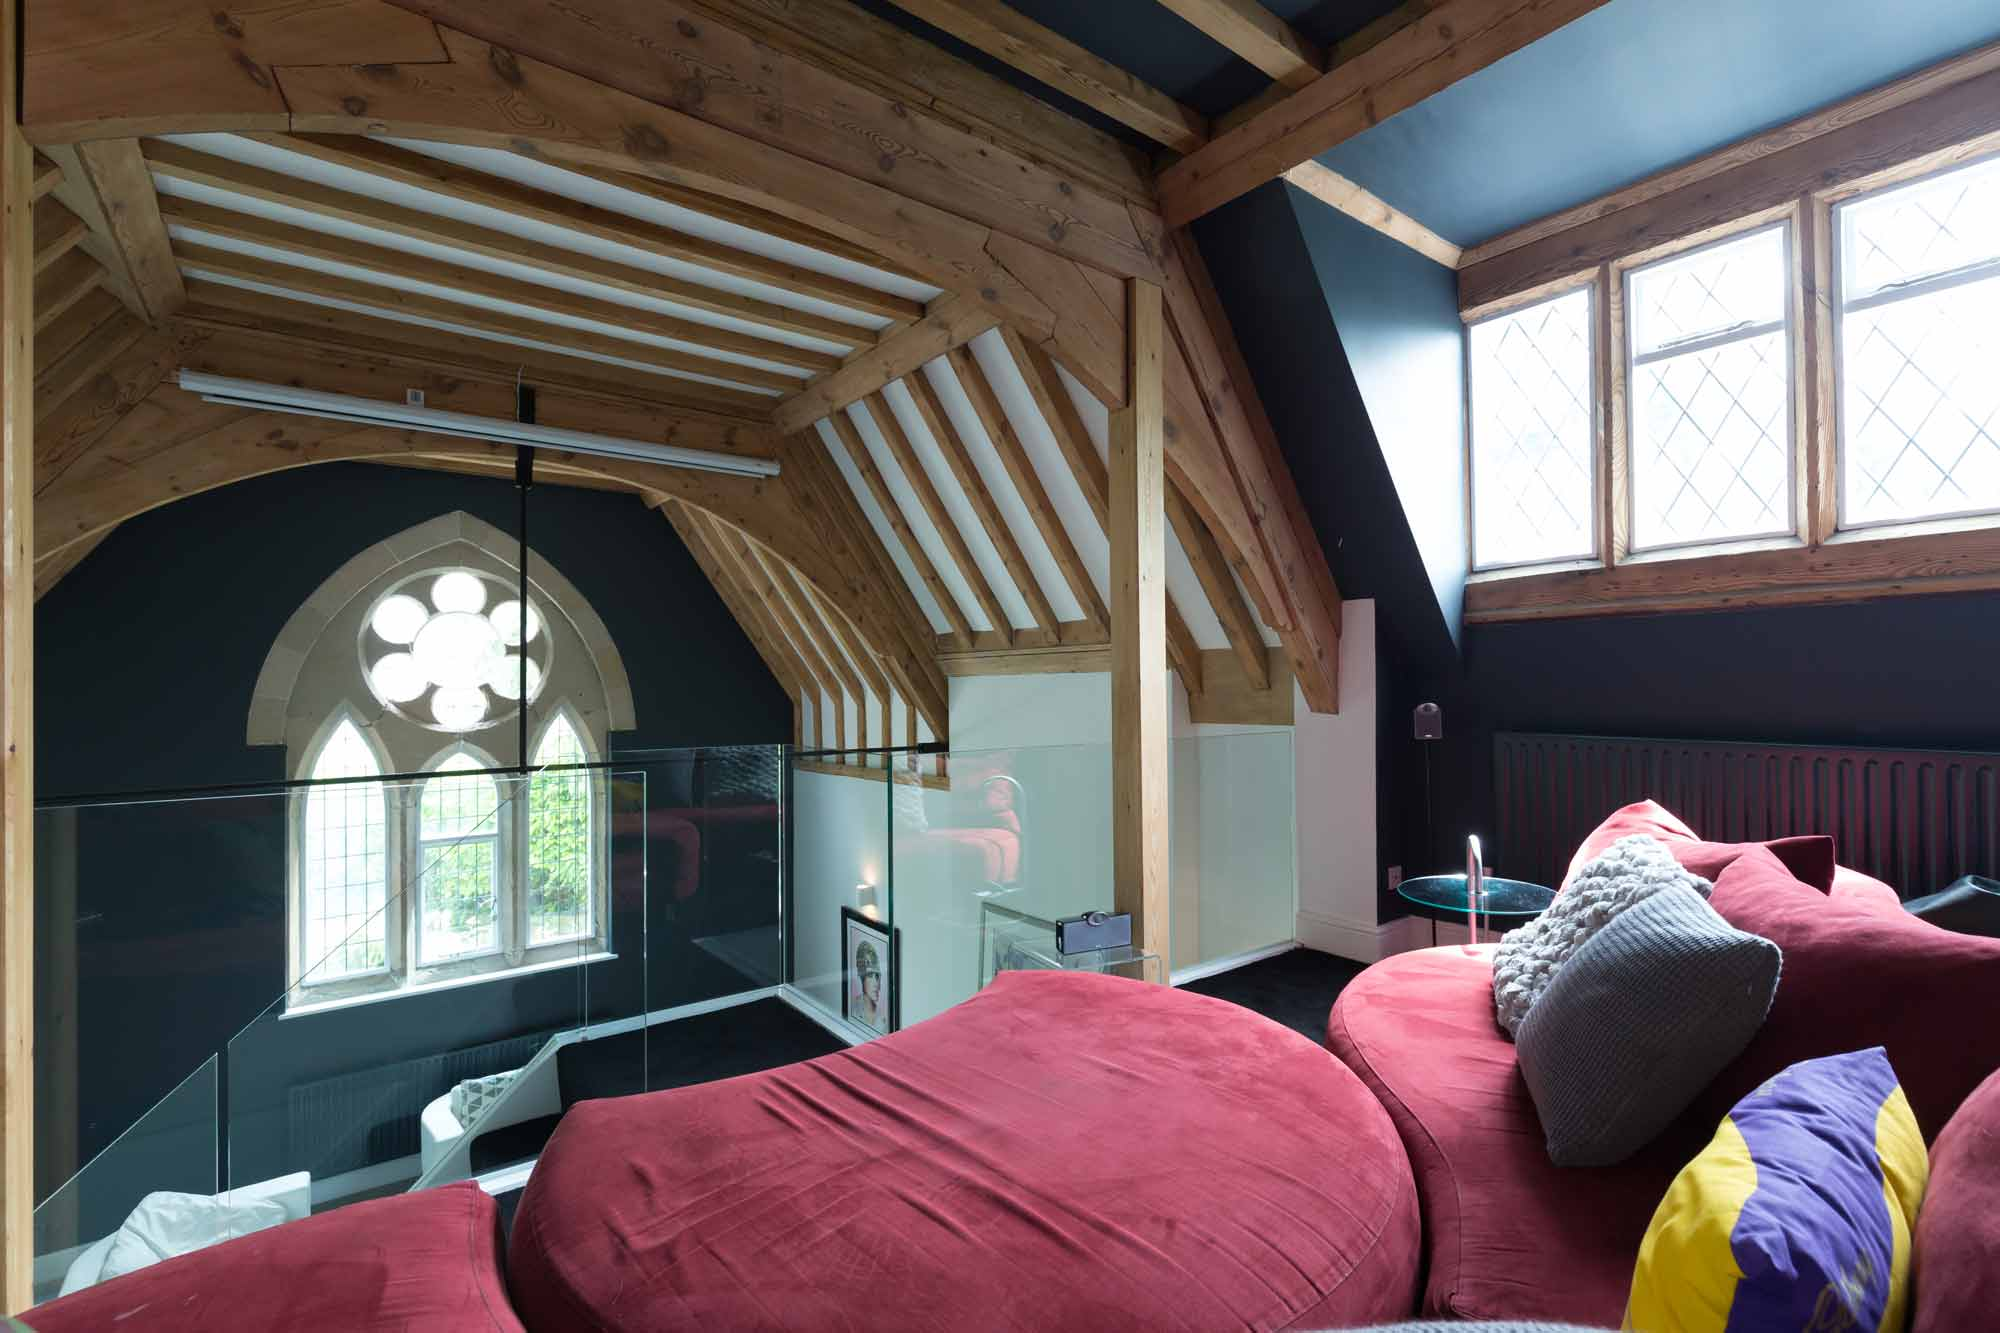 cinema room, projector, frameless glass balustrade, pitch pine rafters posts and trusses